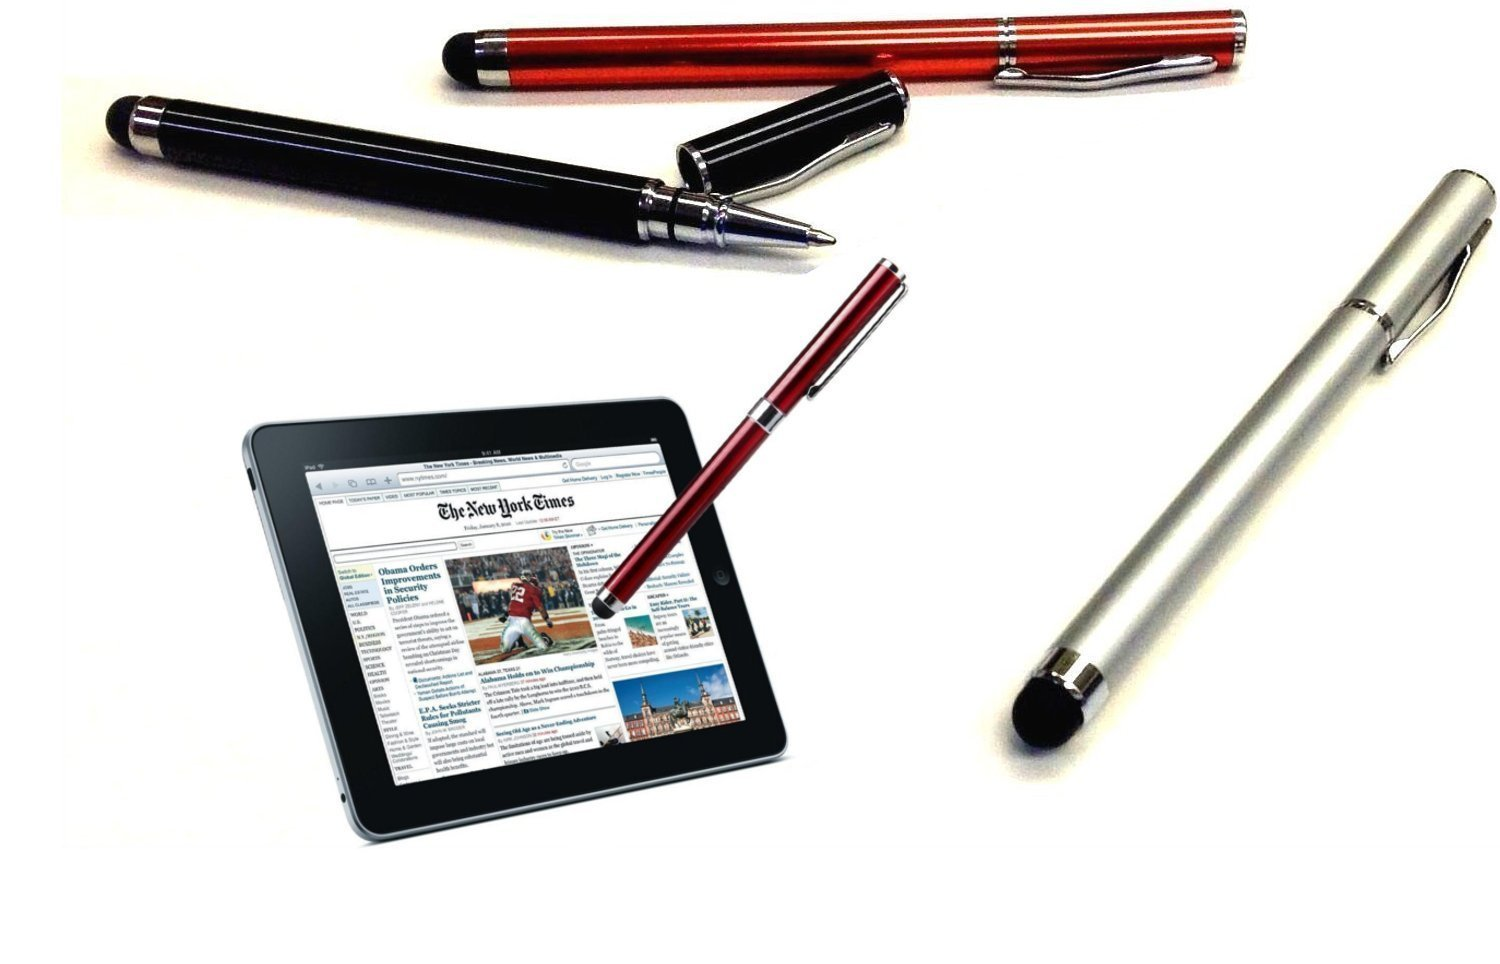 PRO Karbonn A1+ Duple Custom High Sensitivity Touch Stylus + Writing Pen with Ink! [3 Pack - Silver Red Black]